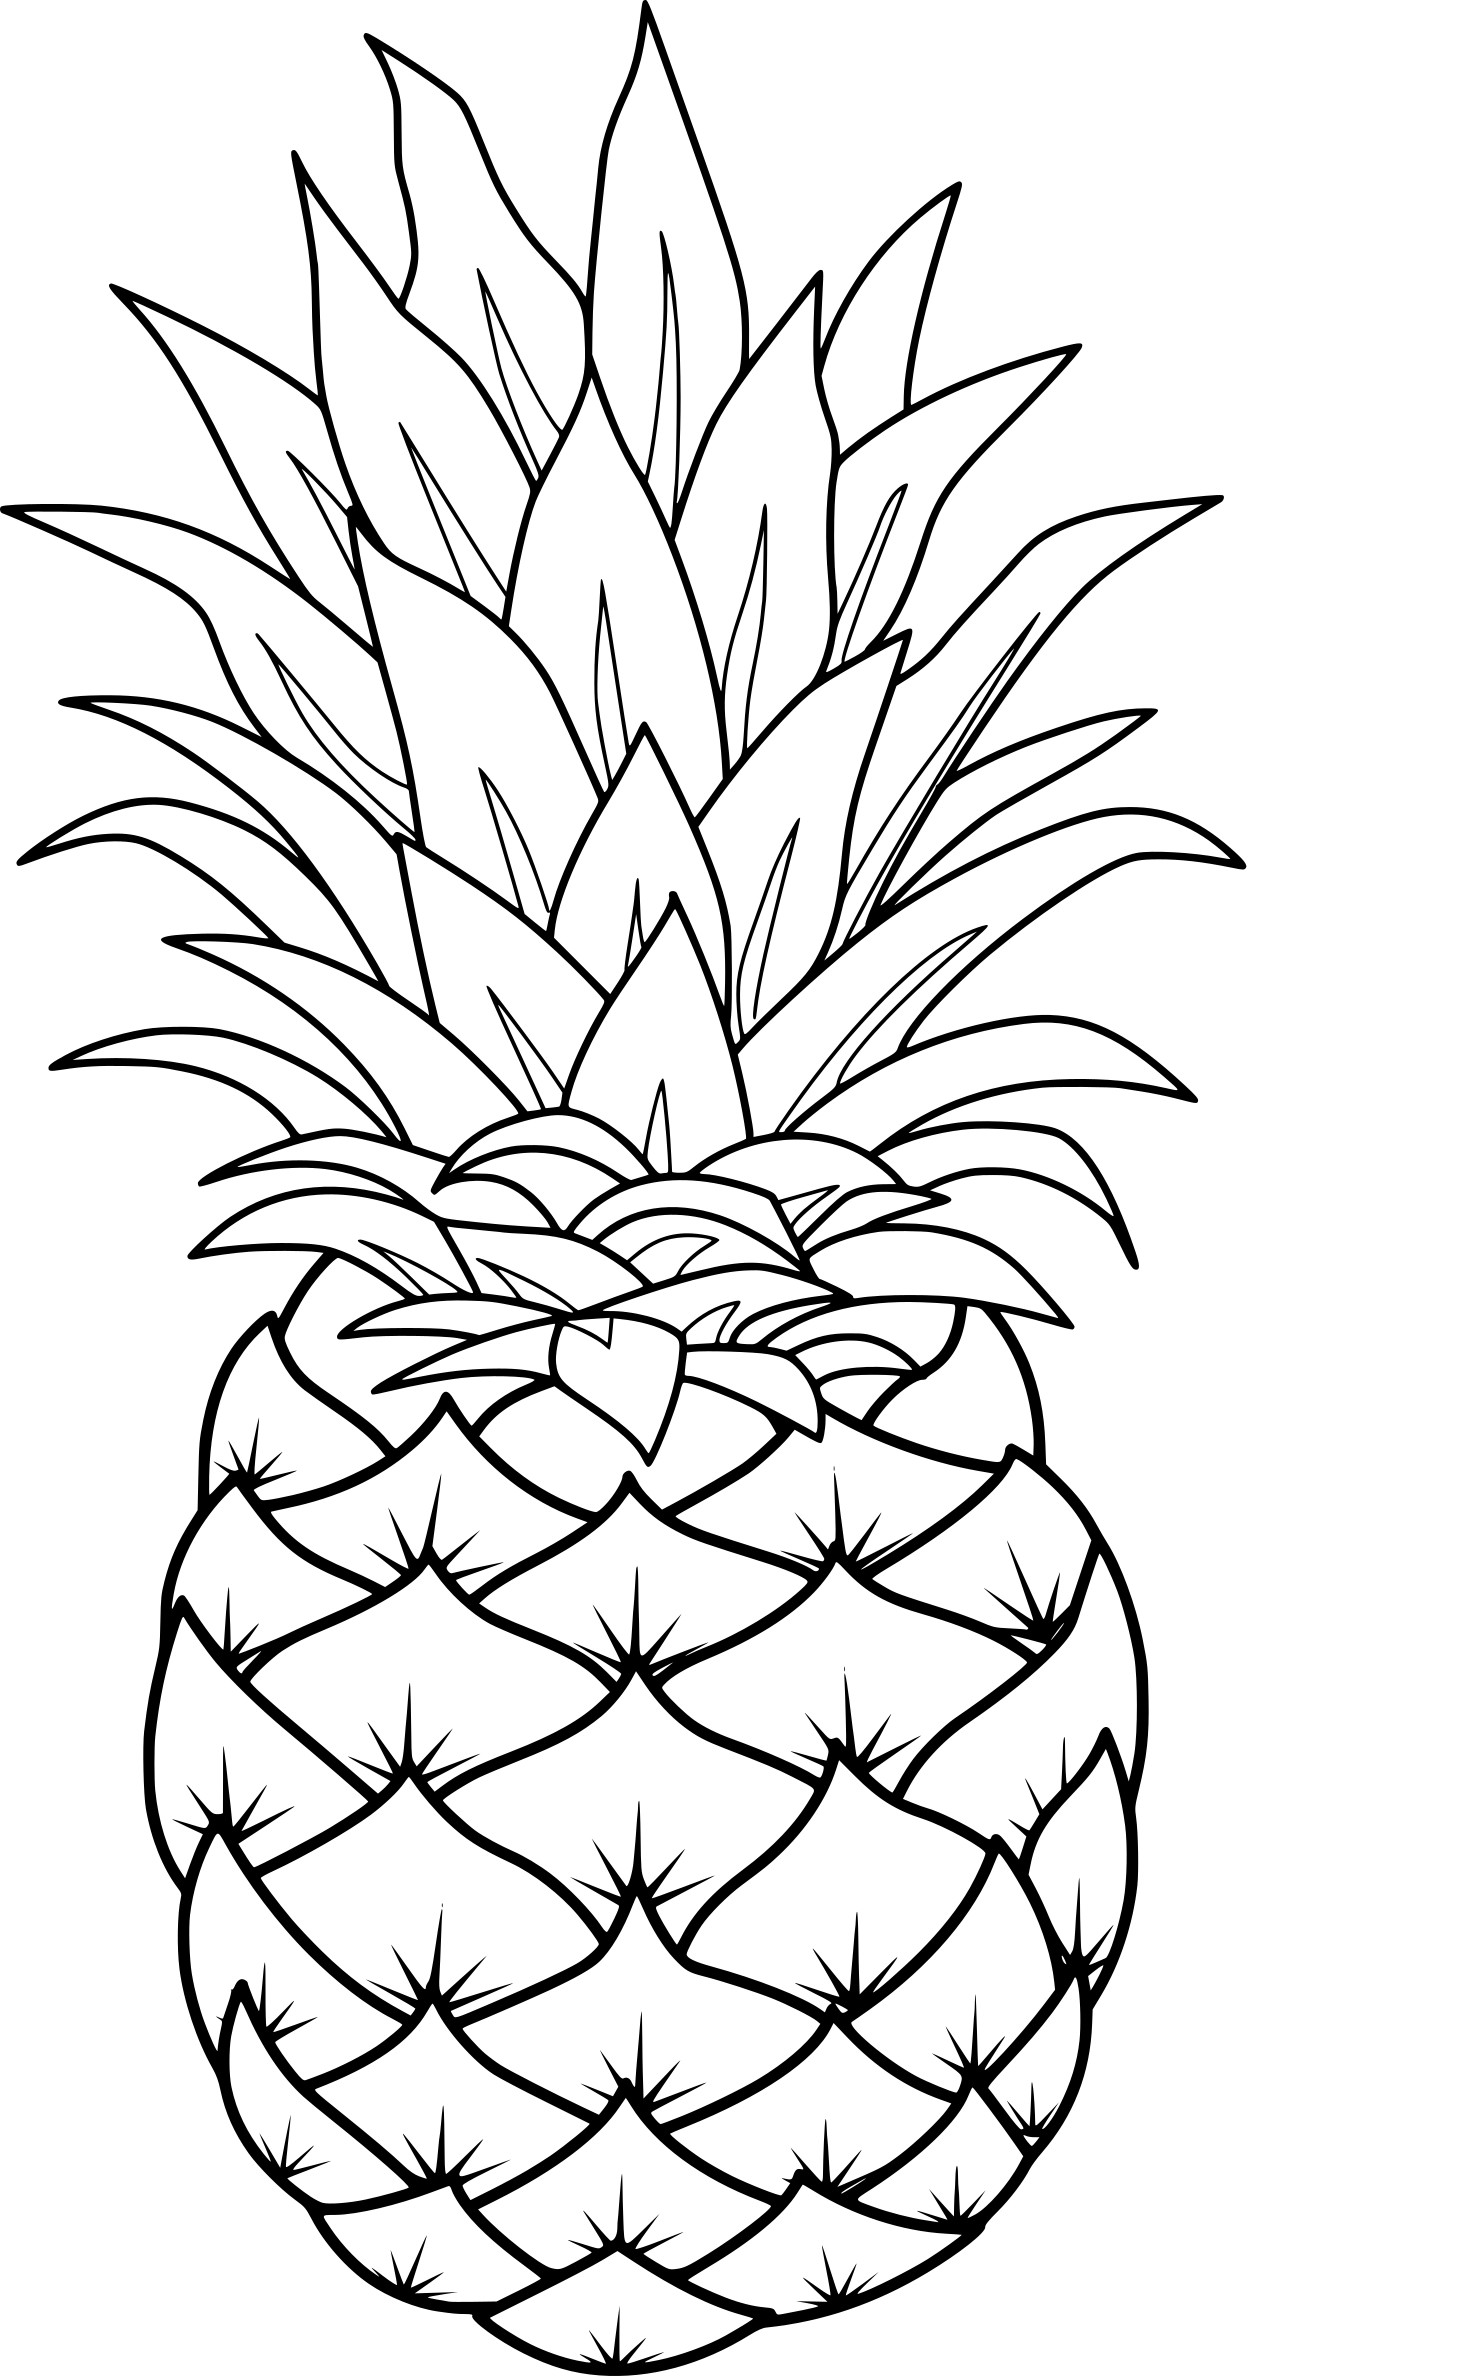 Coloring pictures of pineapple